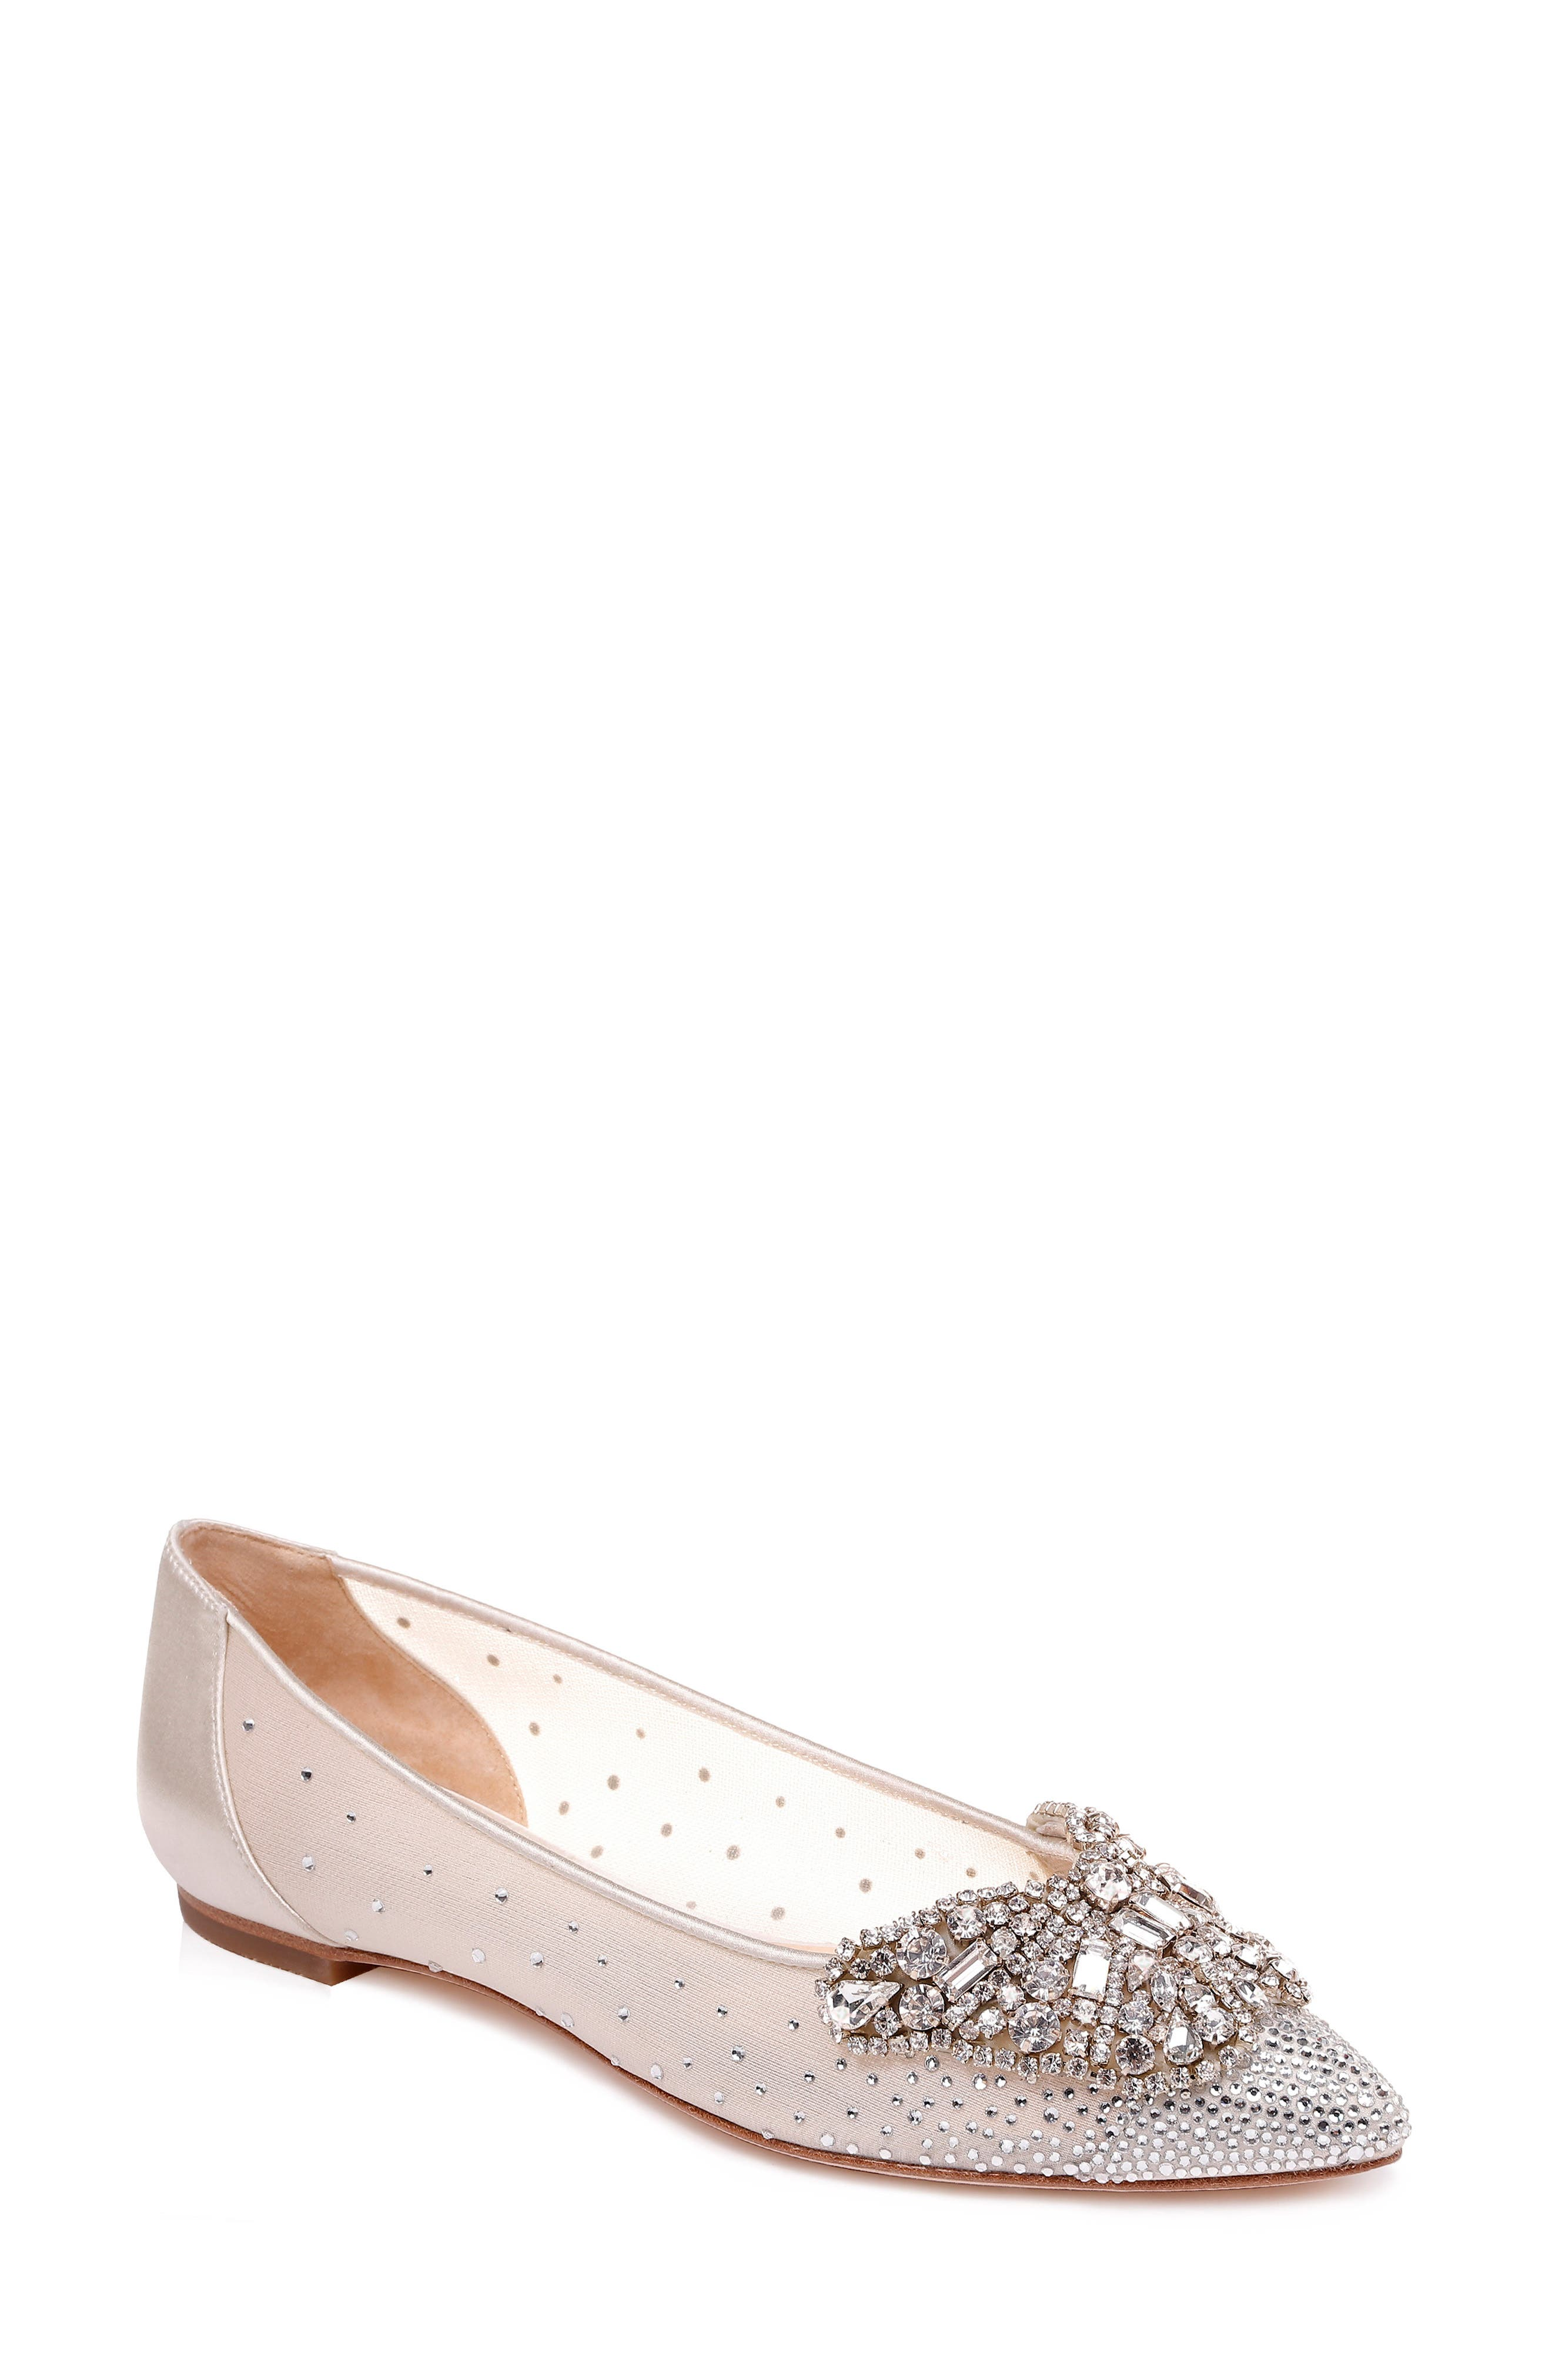 Quinn Embellished Pointed Toe Flat